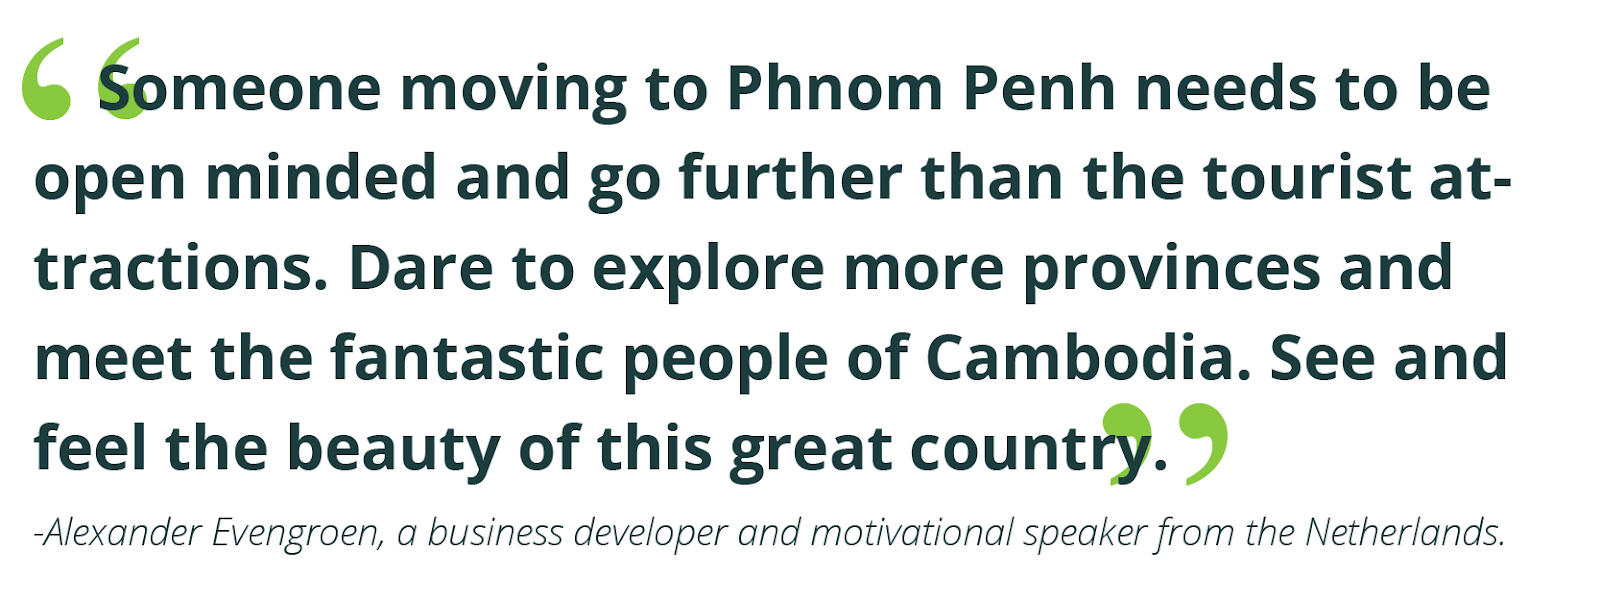 """Someone moving to Phnom Penh needs to be open minded and go further than the tourist attractions. Dare to explore more provinces and meet the fantastic people of Cambodia. See and feel the beauty of this great country.""  -Alexander Evengroen, a business developer and motivational speaker from the Netherlands."